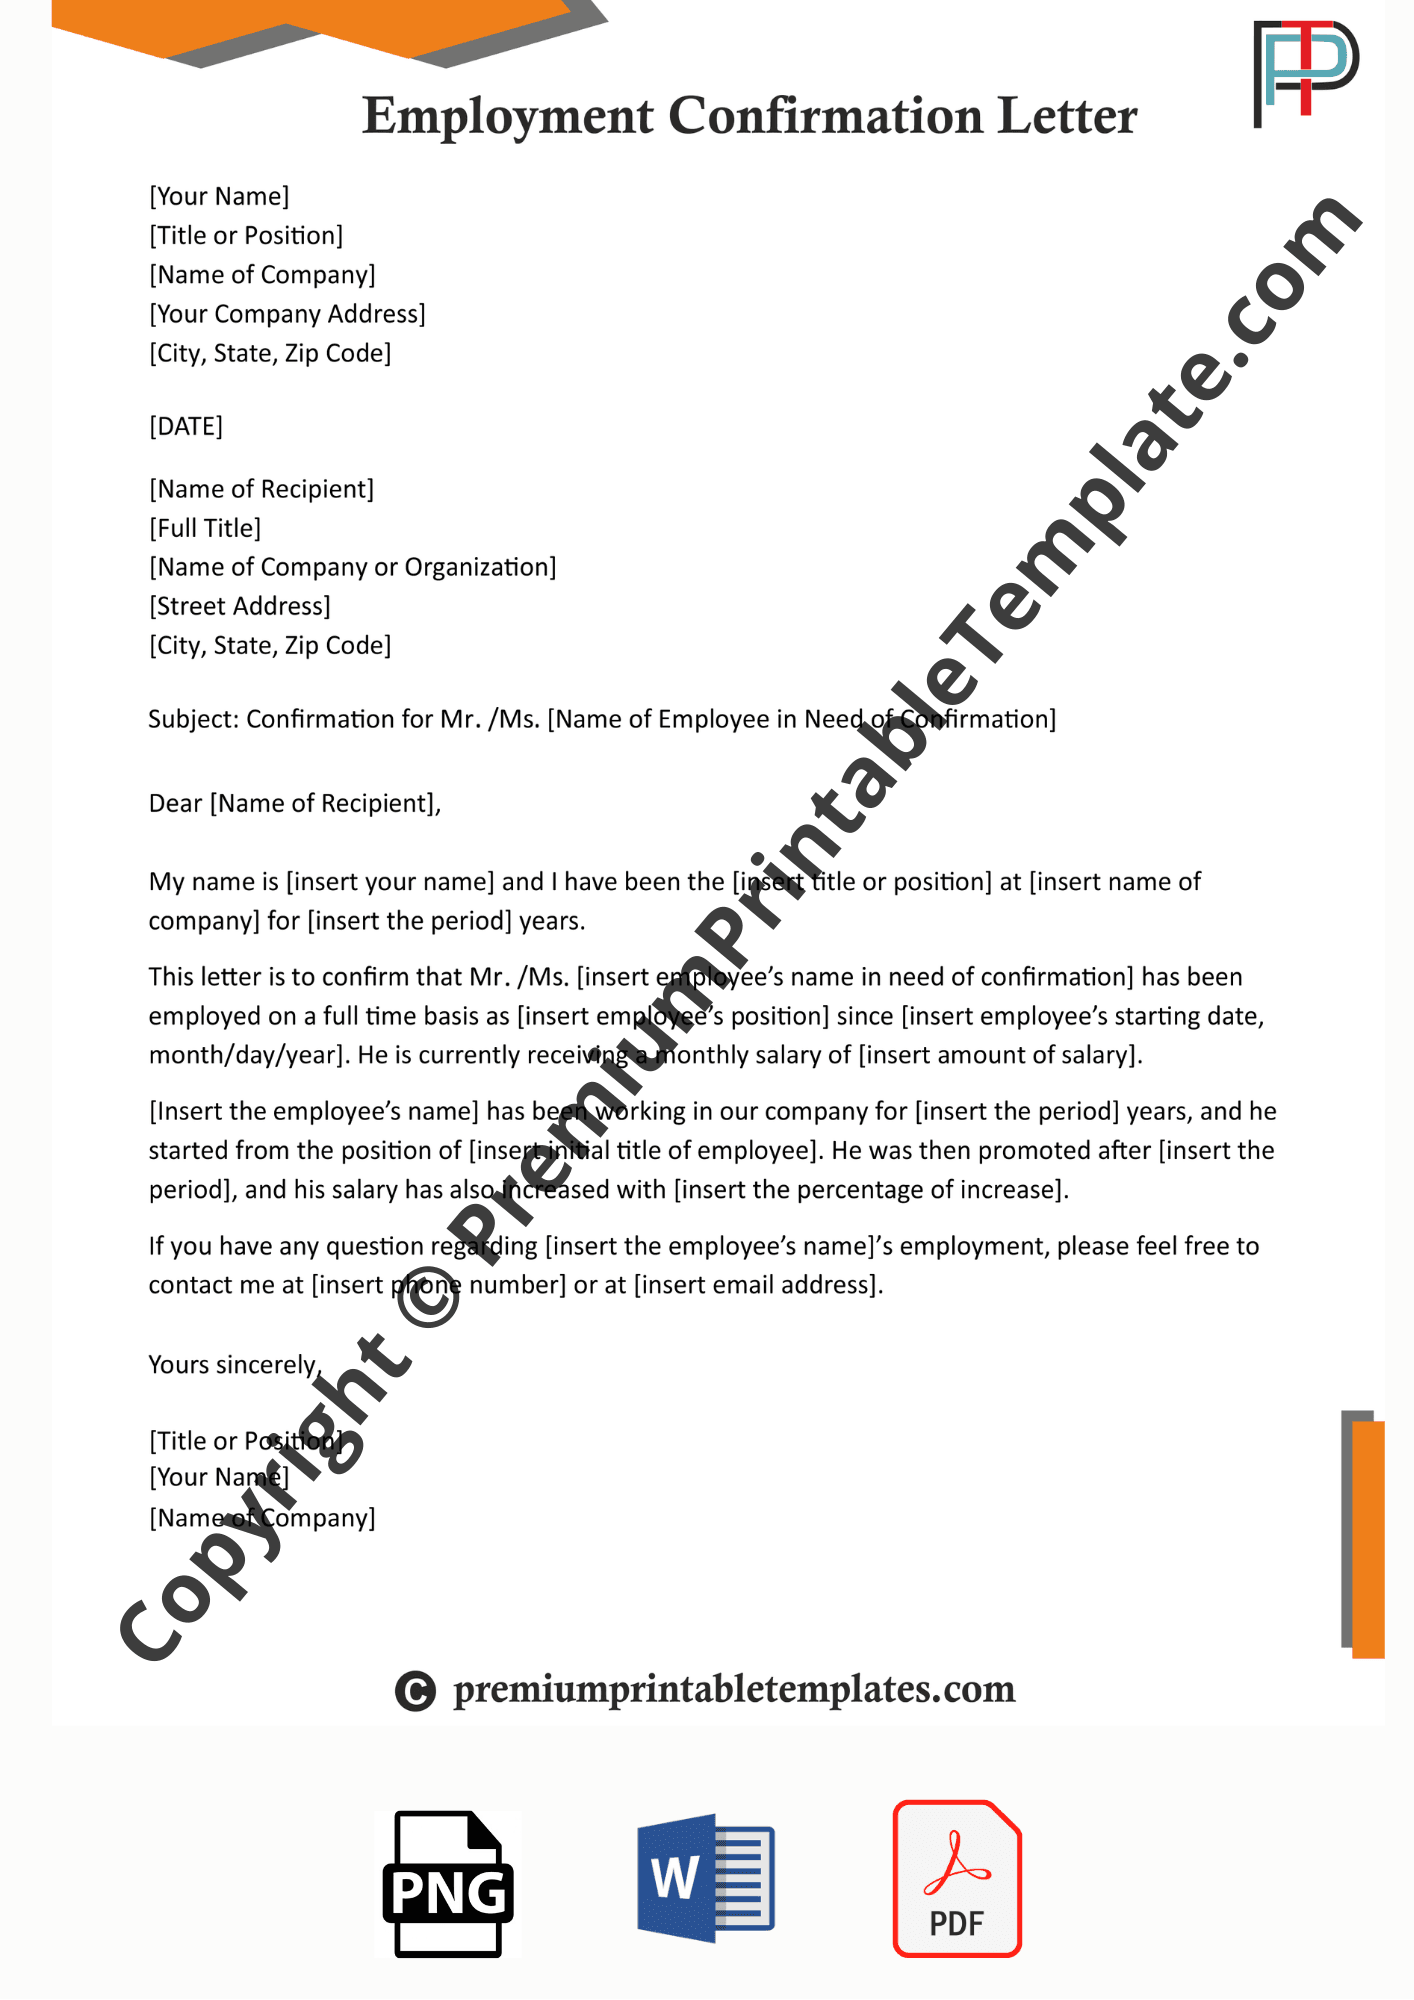 Employment Confirmation Letter Editable & PDF in 2020